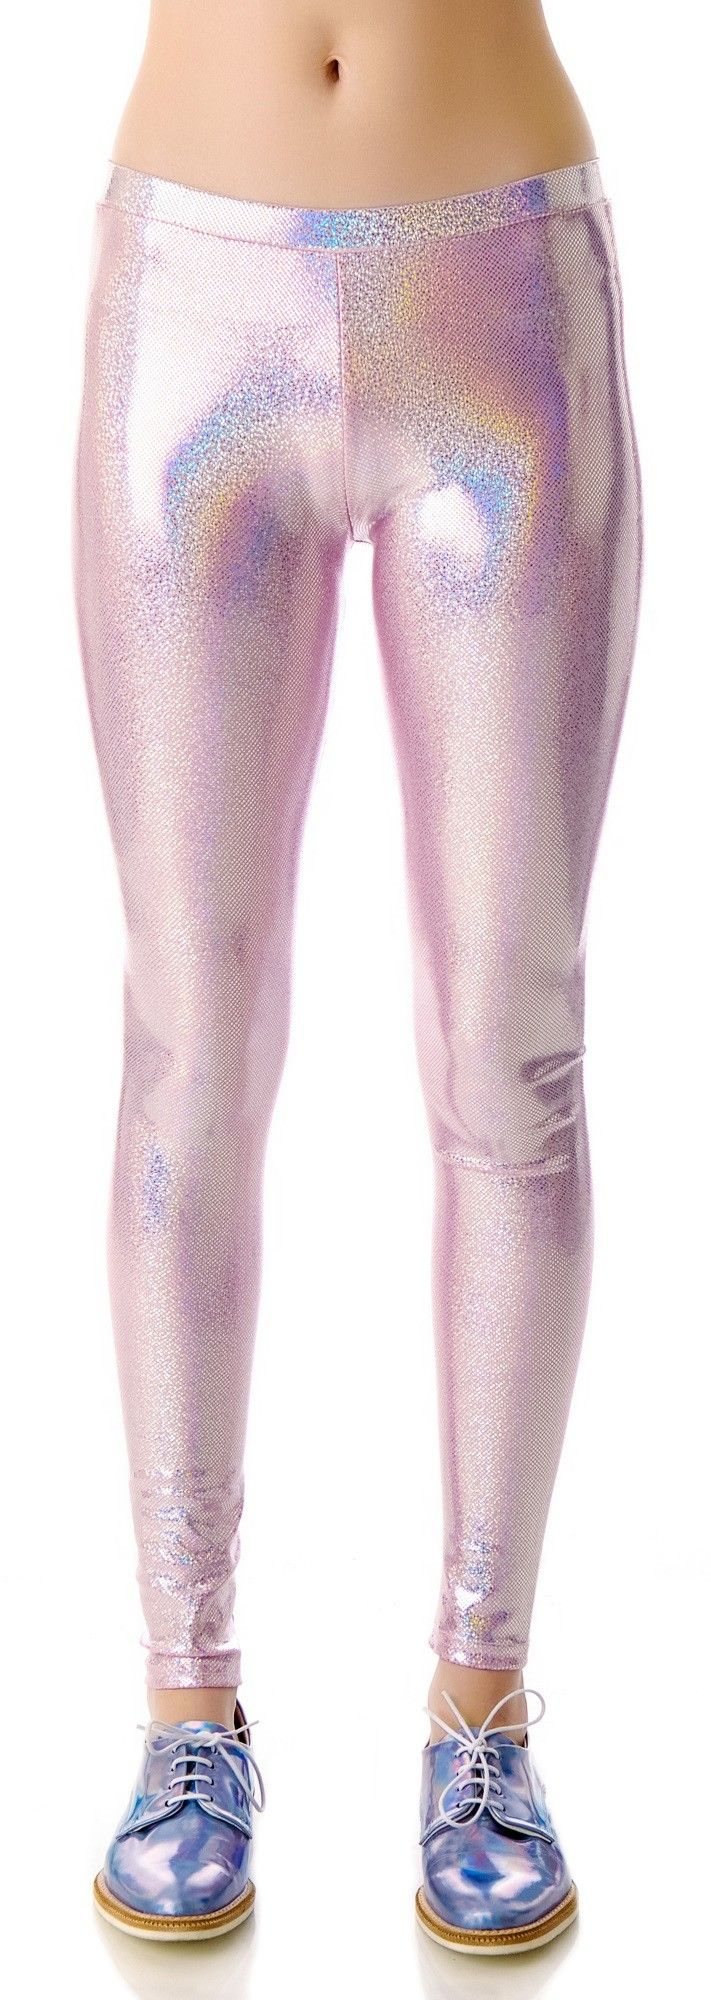 Tentacle Threads Sparkle Leggings | Dolls Kill MR